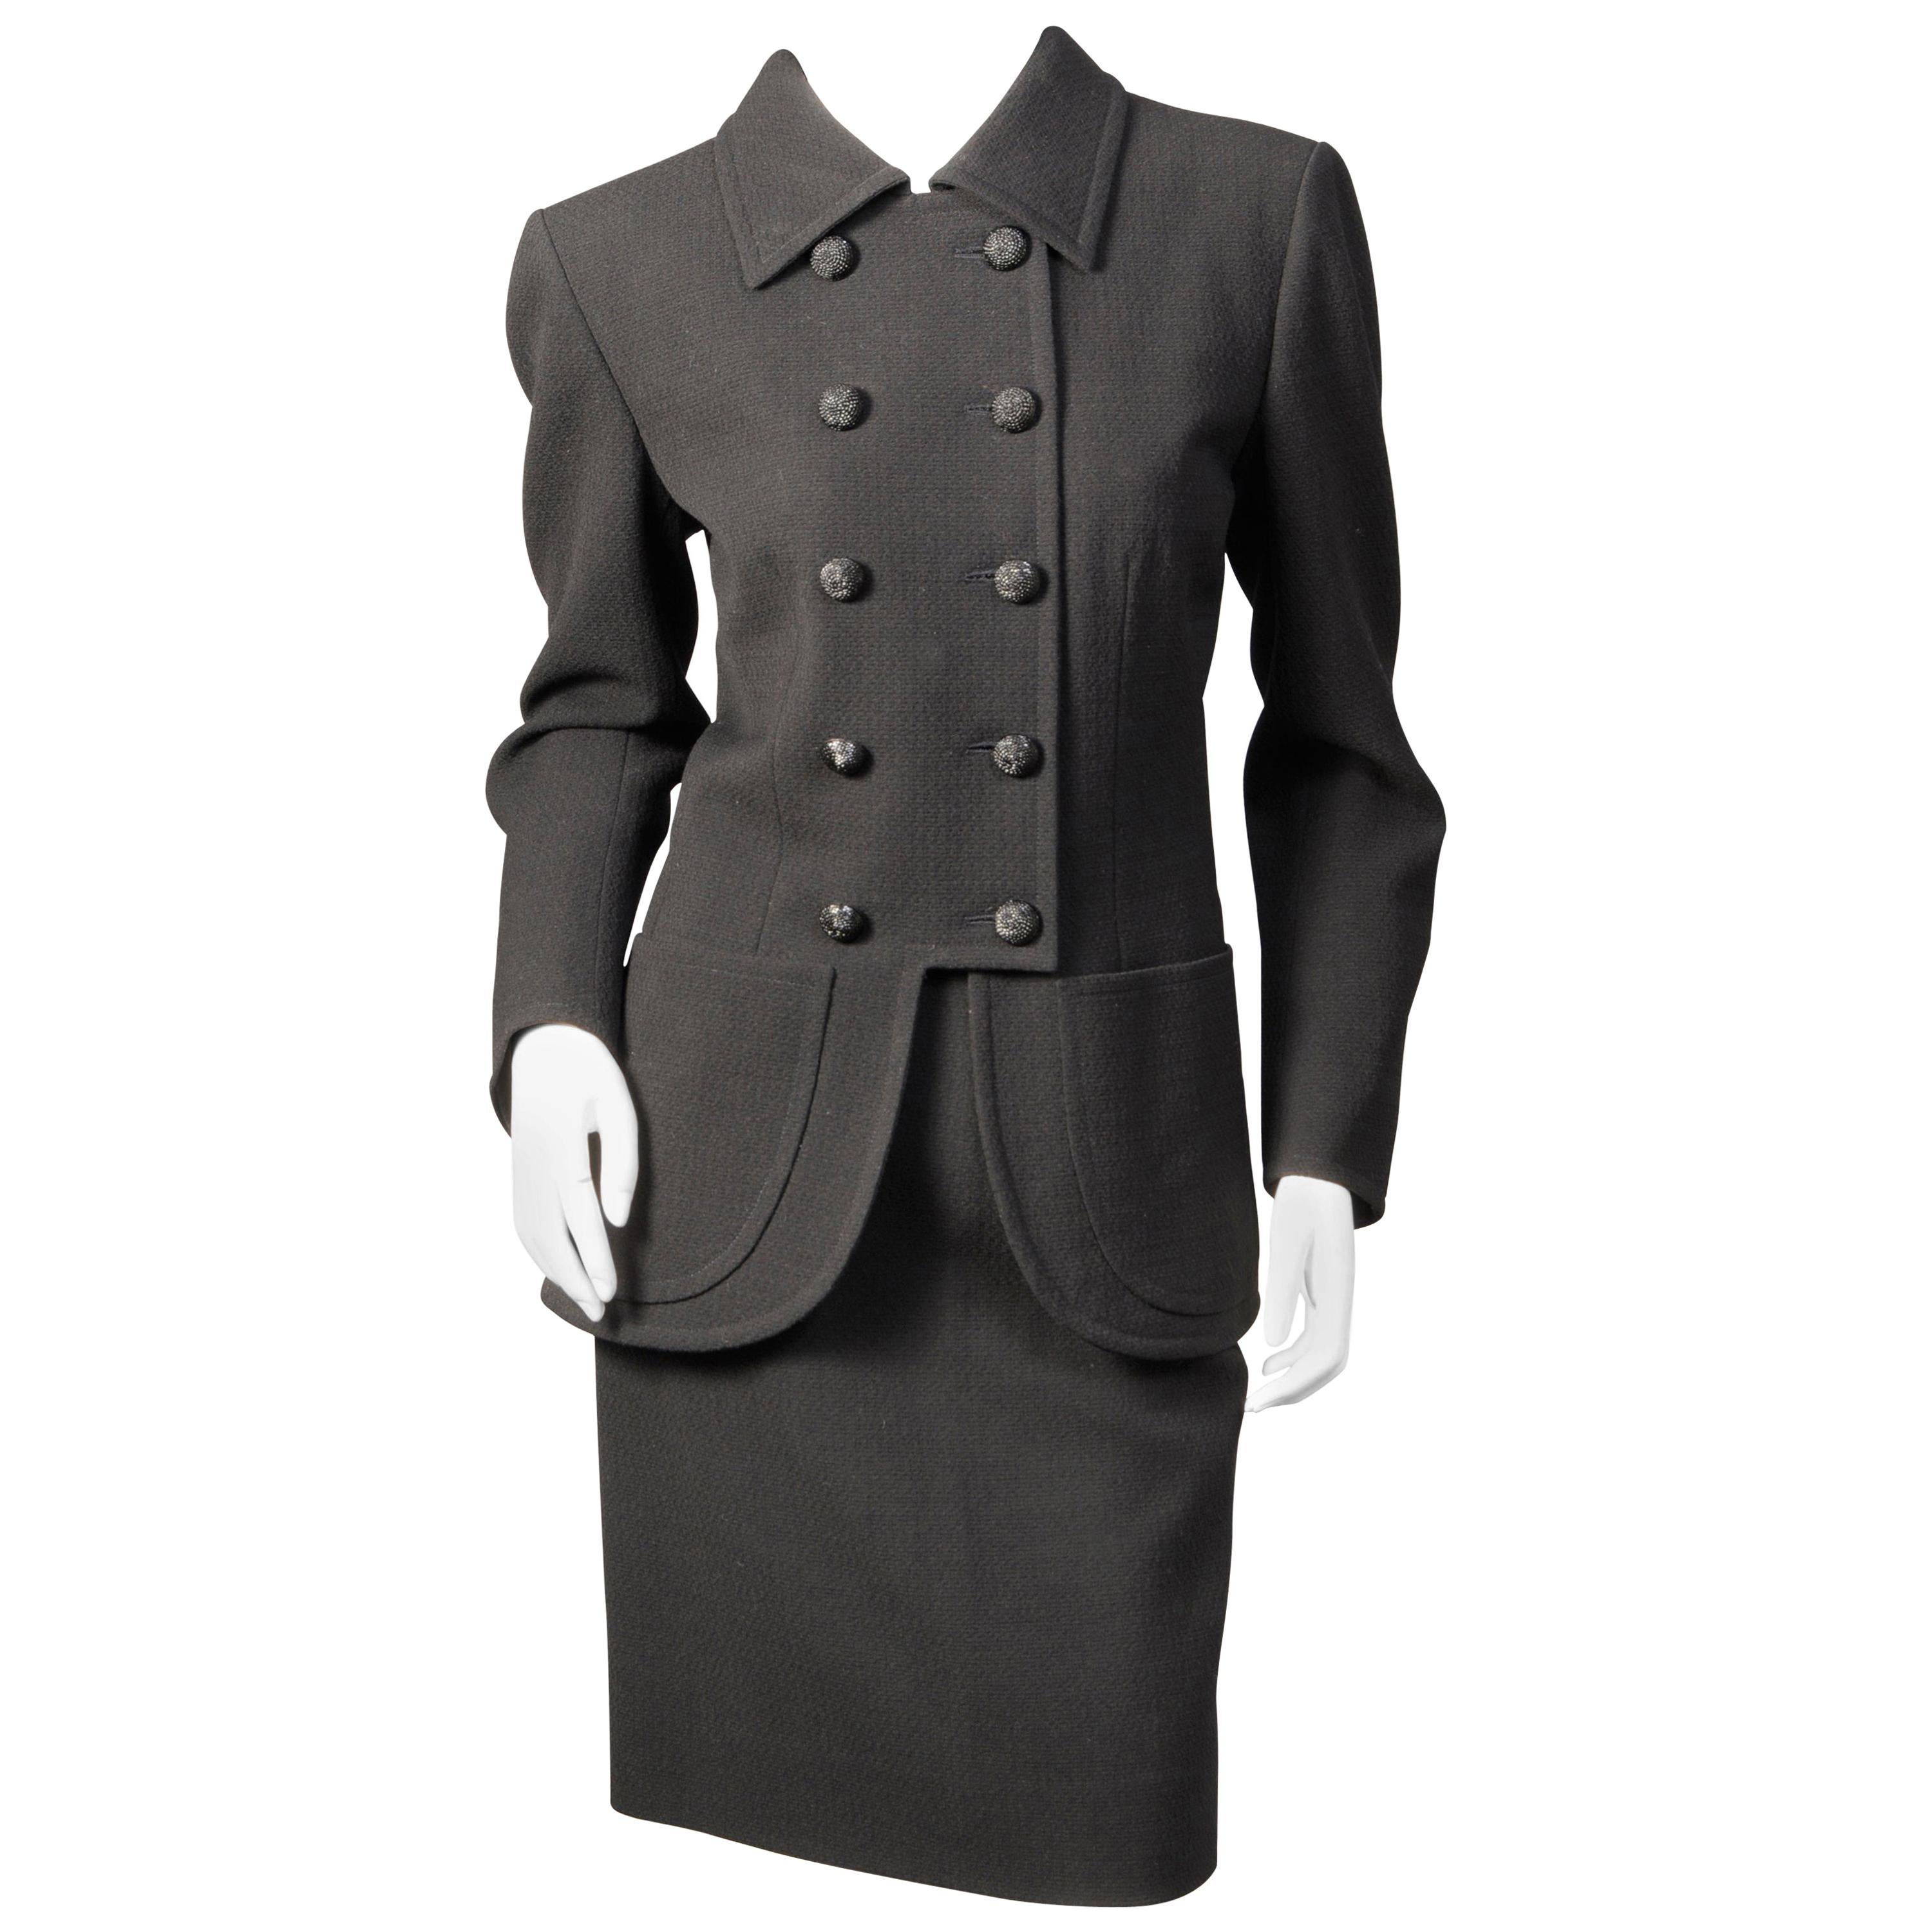 Yves Saint Laurent Haute Couture Double Breasted Black Wool Suit, late 1970s